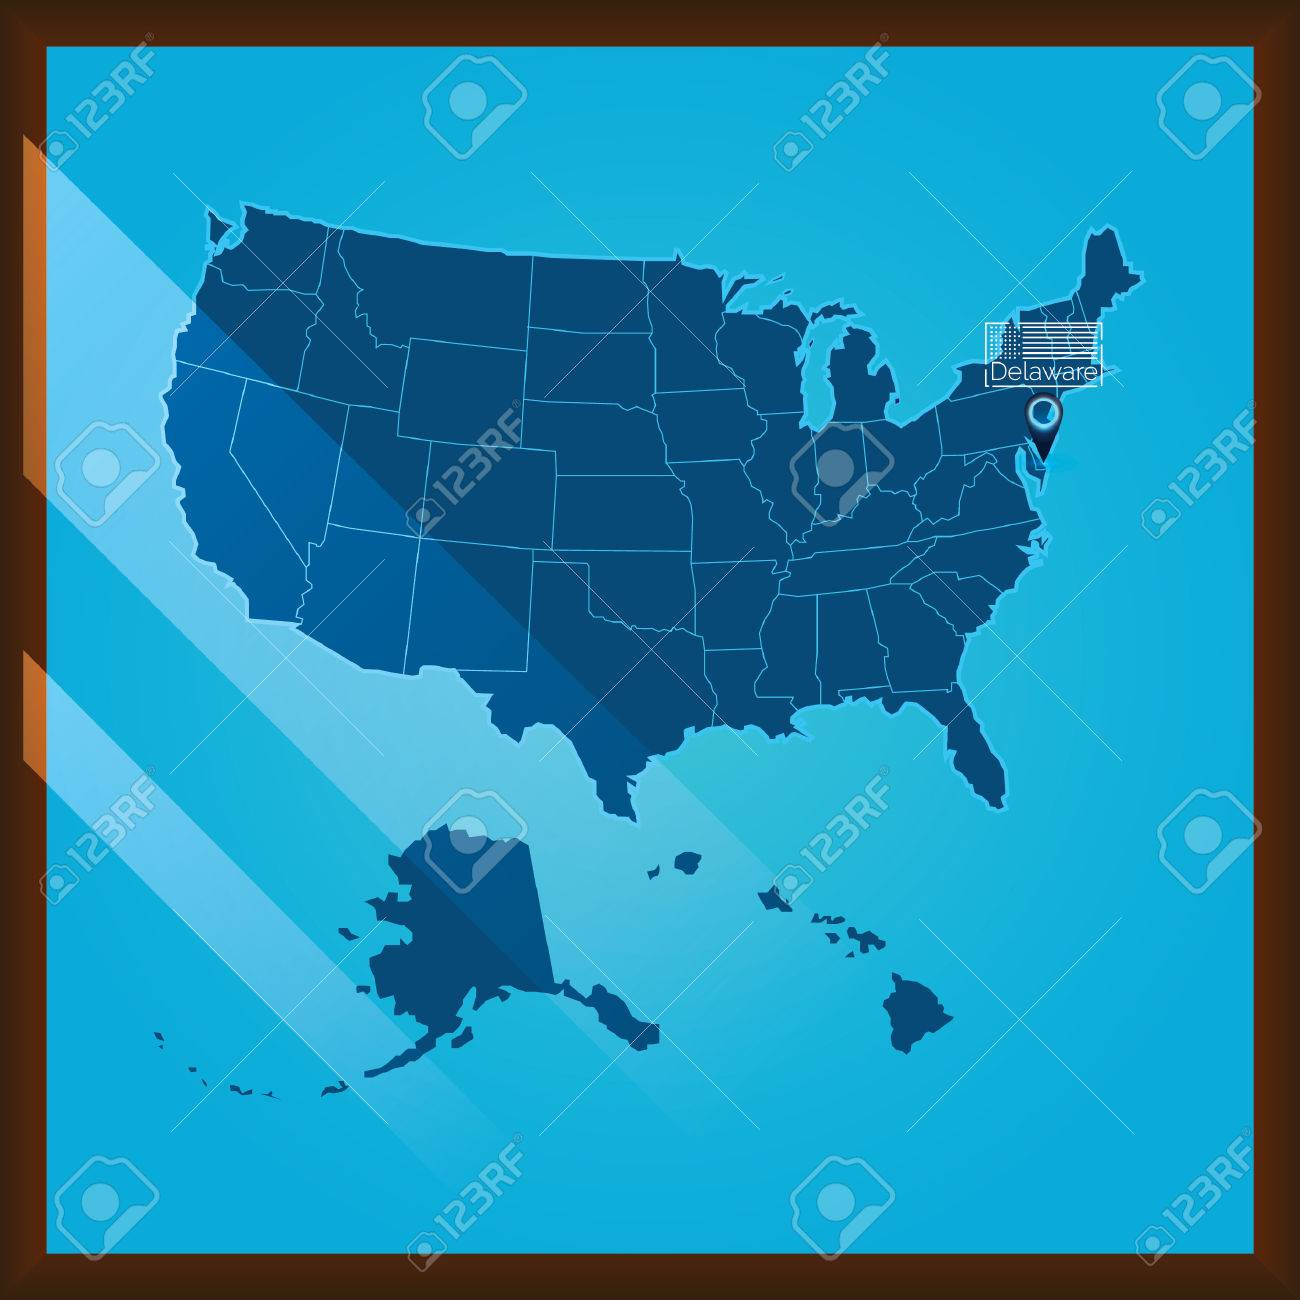 Delaware On The Us Map - Delaware on a us map